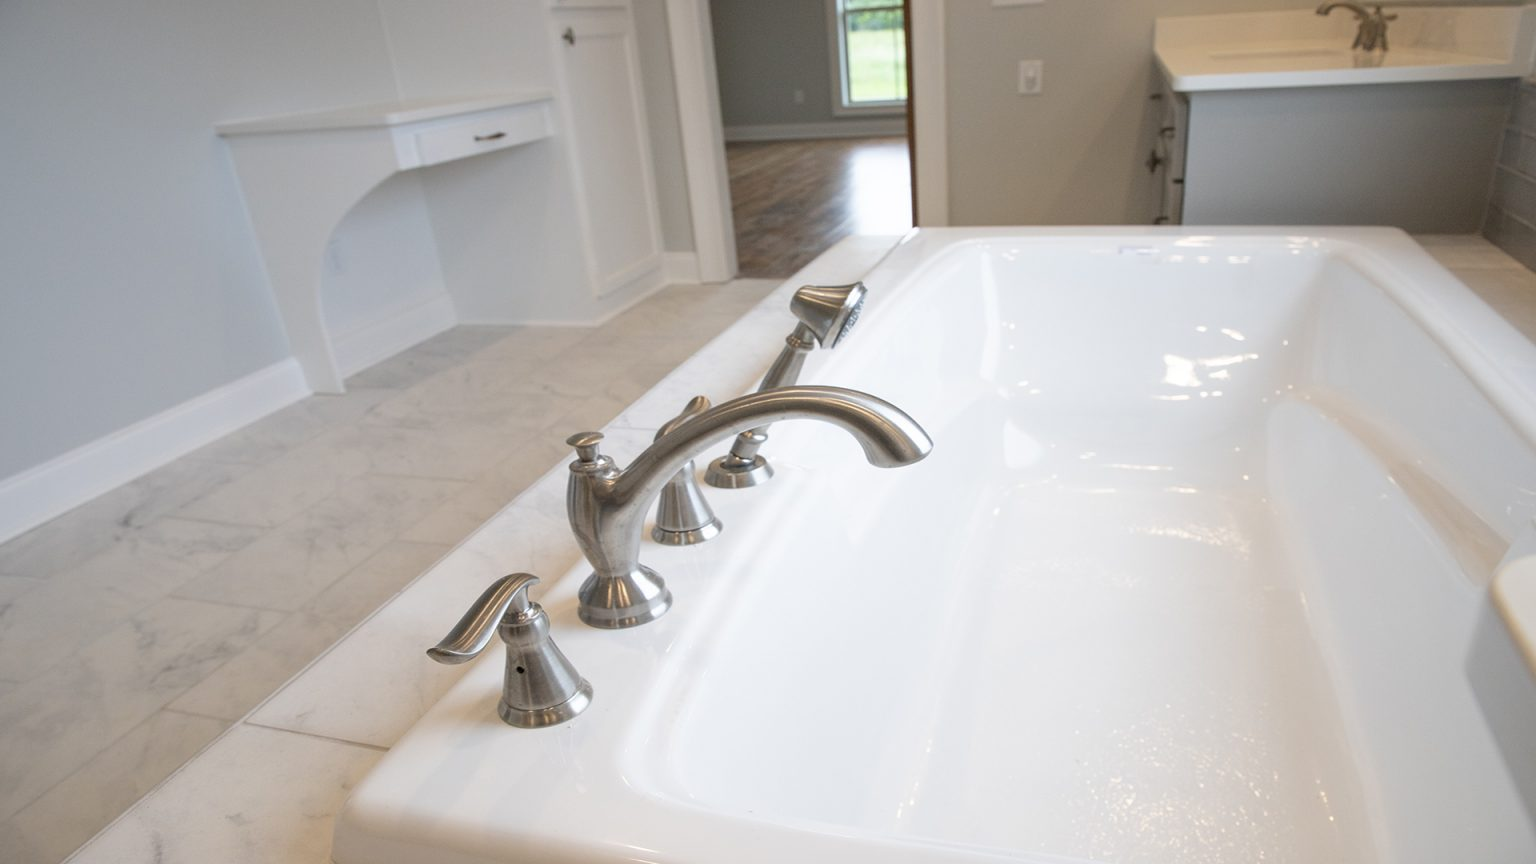 pewter plumbing fixtures with hand washer brandon mississippi